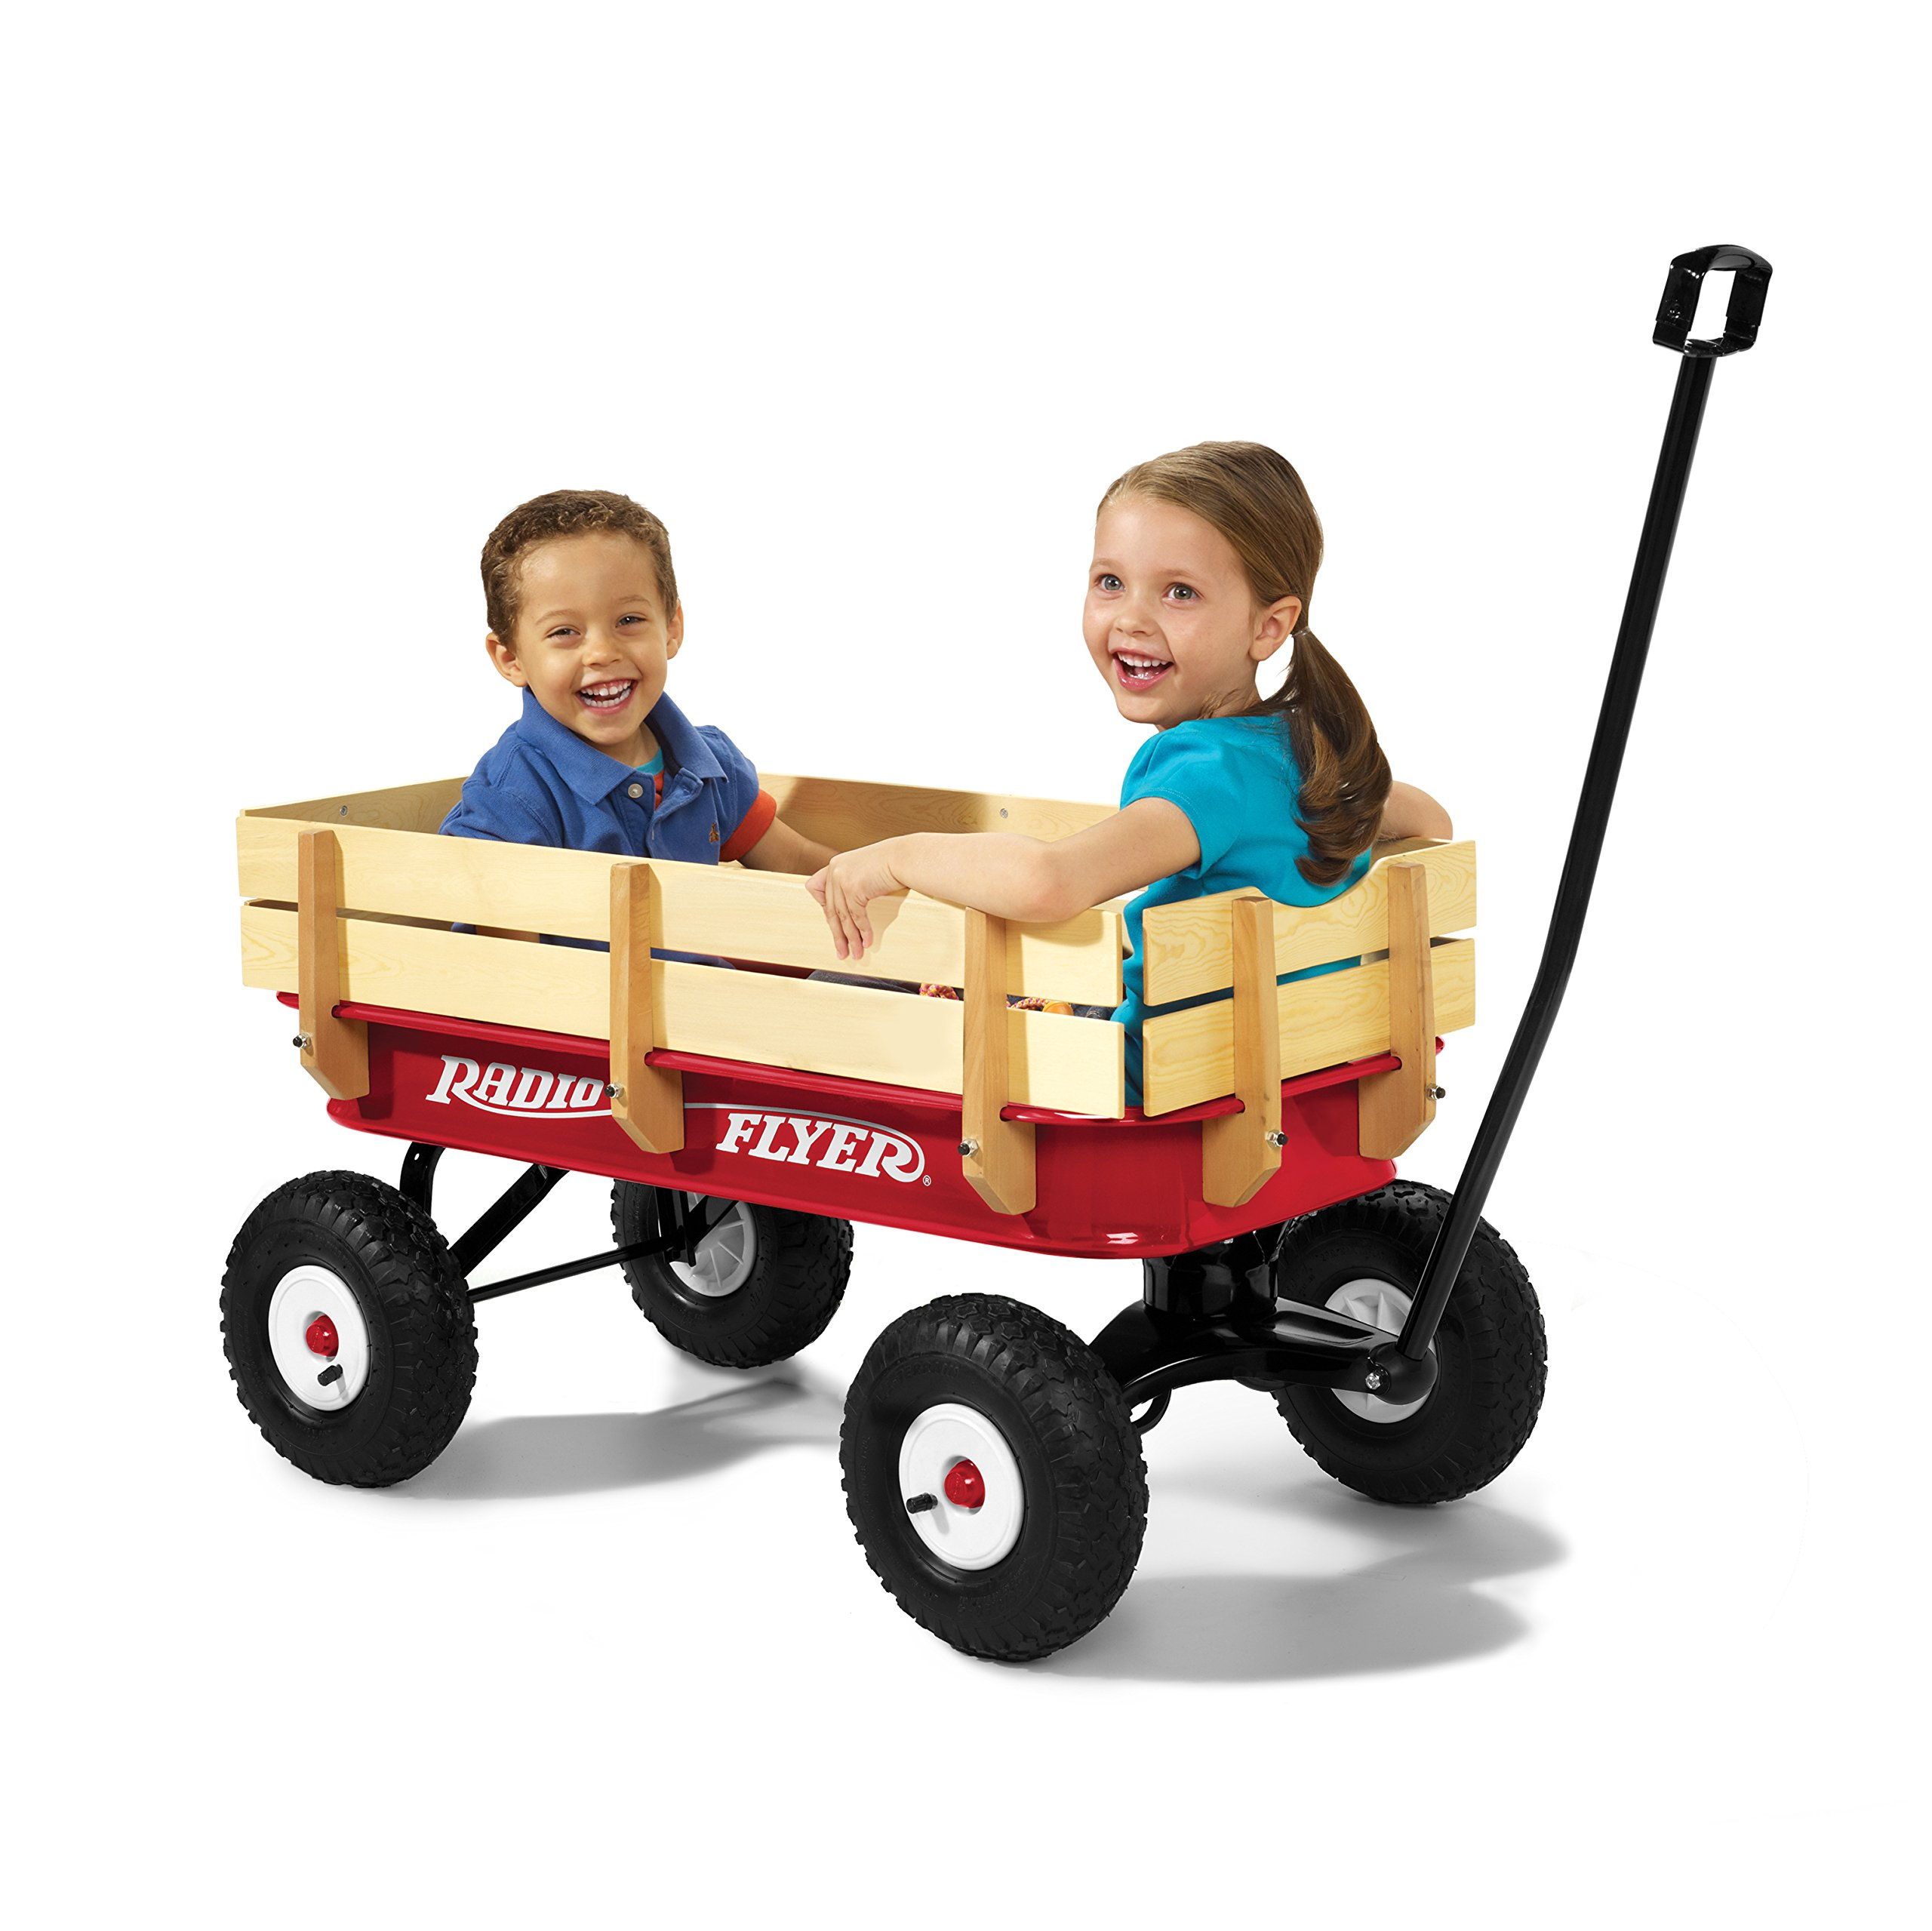 Radio Flyer Full Size All-Terrain Steel & Wood Wagon by Radio Flyer (Image #6)